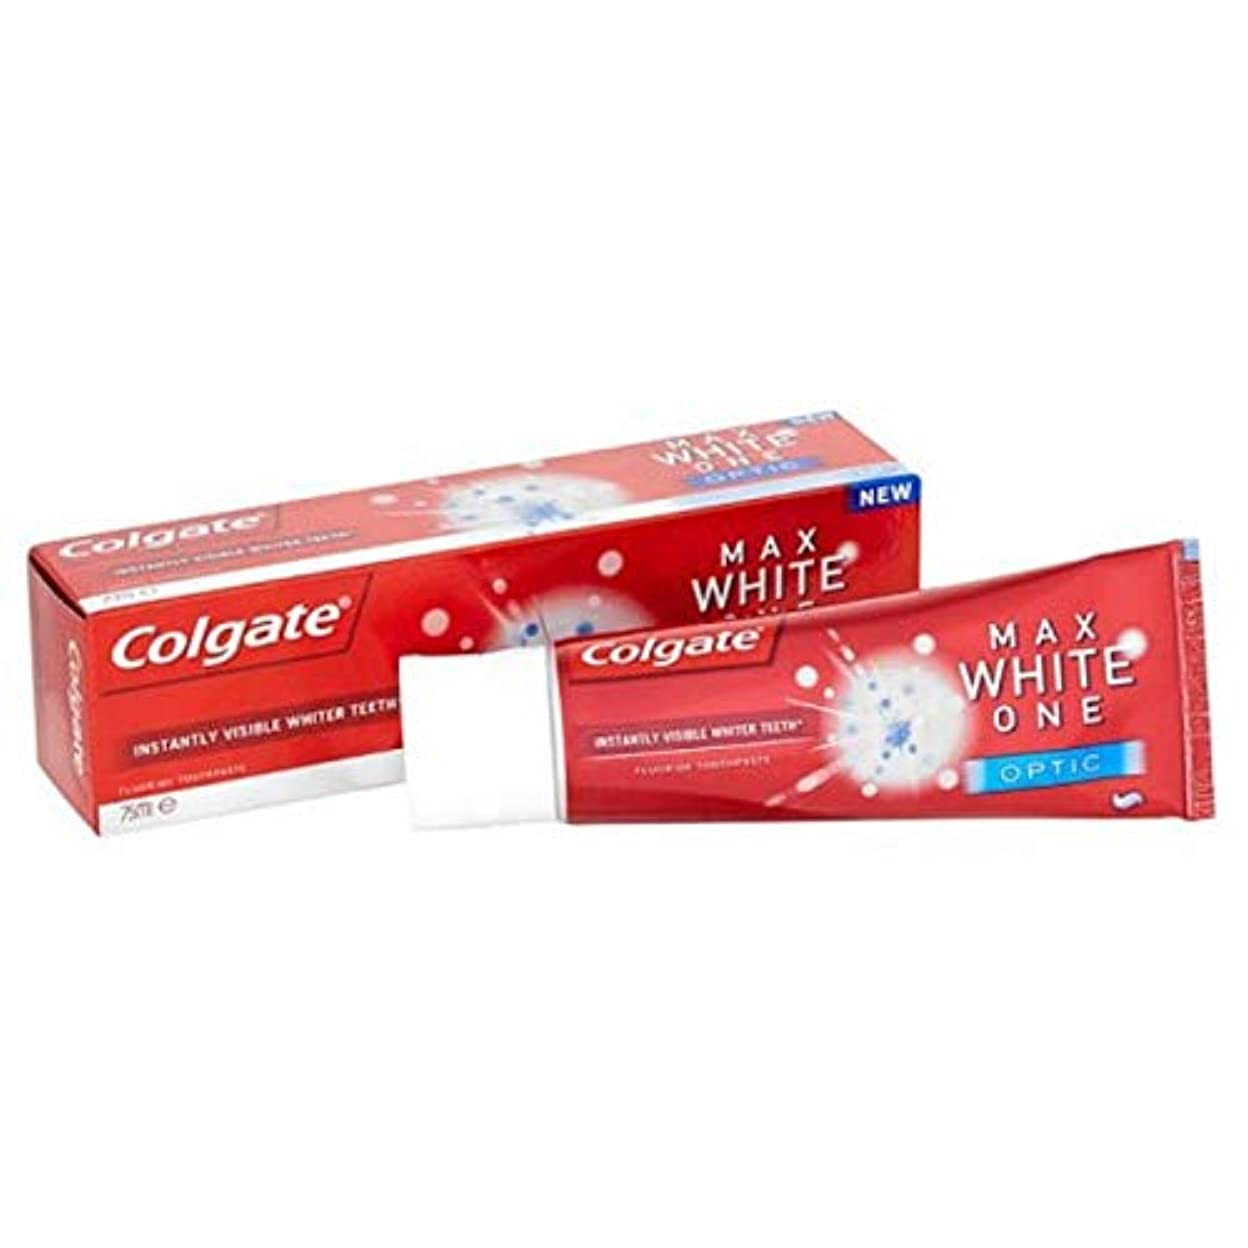 [Colgate ] コルゲート最大白1つの光学歯磨き粉25ミリリットル - Colgate Max White One Optic Toothpaste 25ml [並行輸入品]